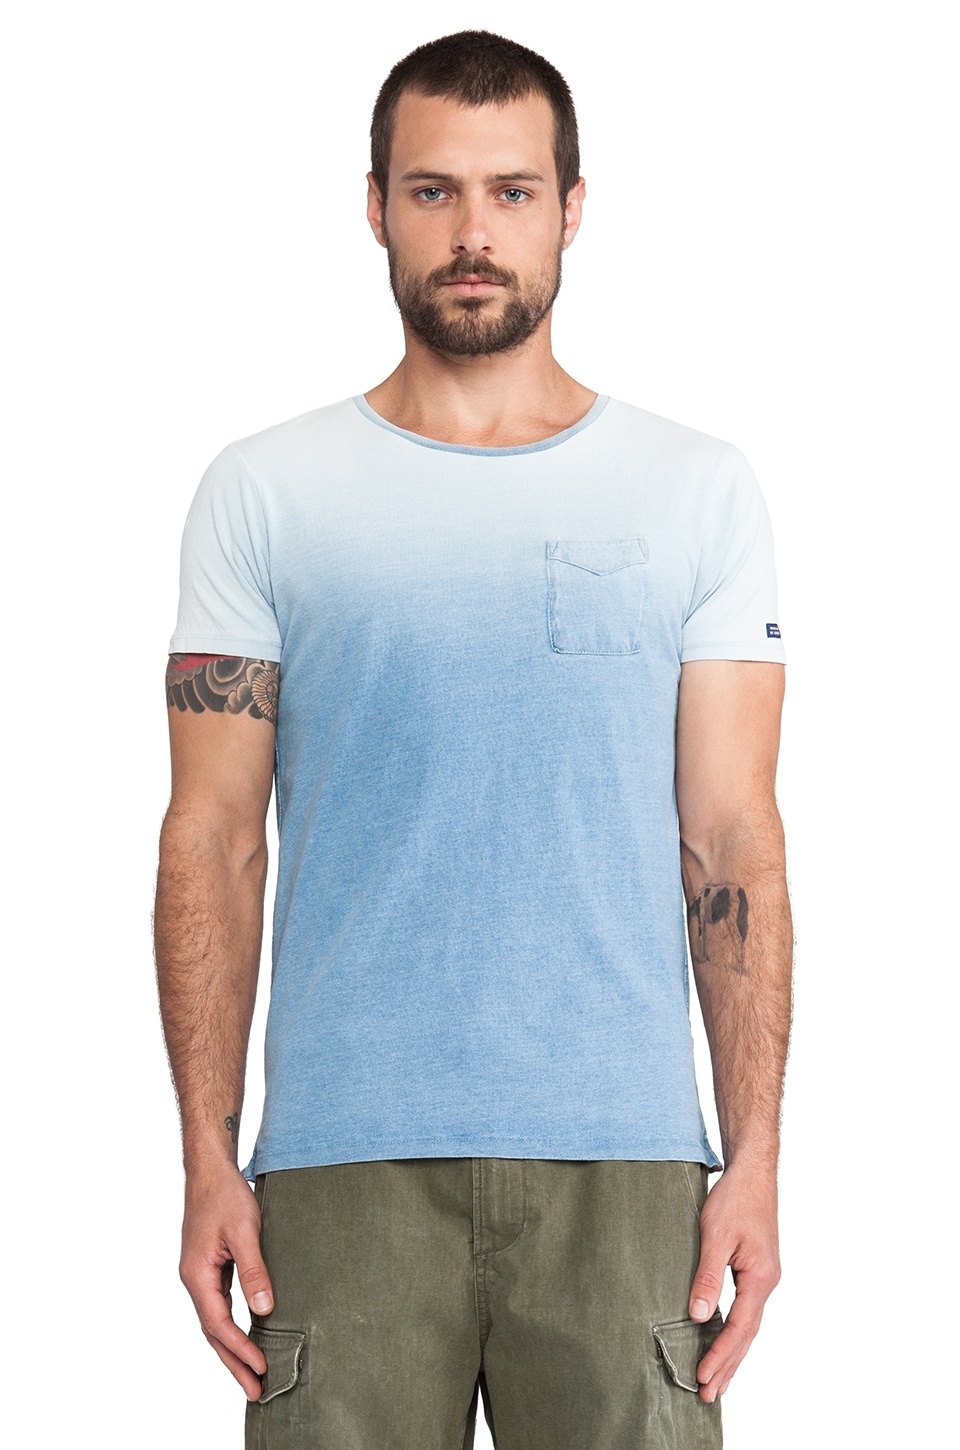 Scotch & Soda Indigo Tee in Stripes, Dessin & Solid in Washed Indigo